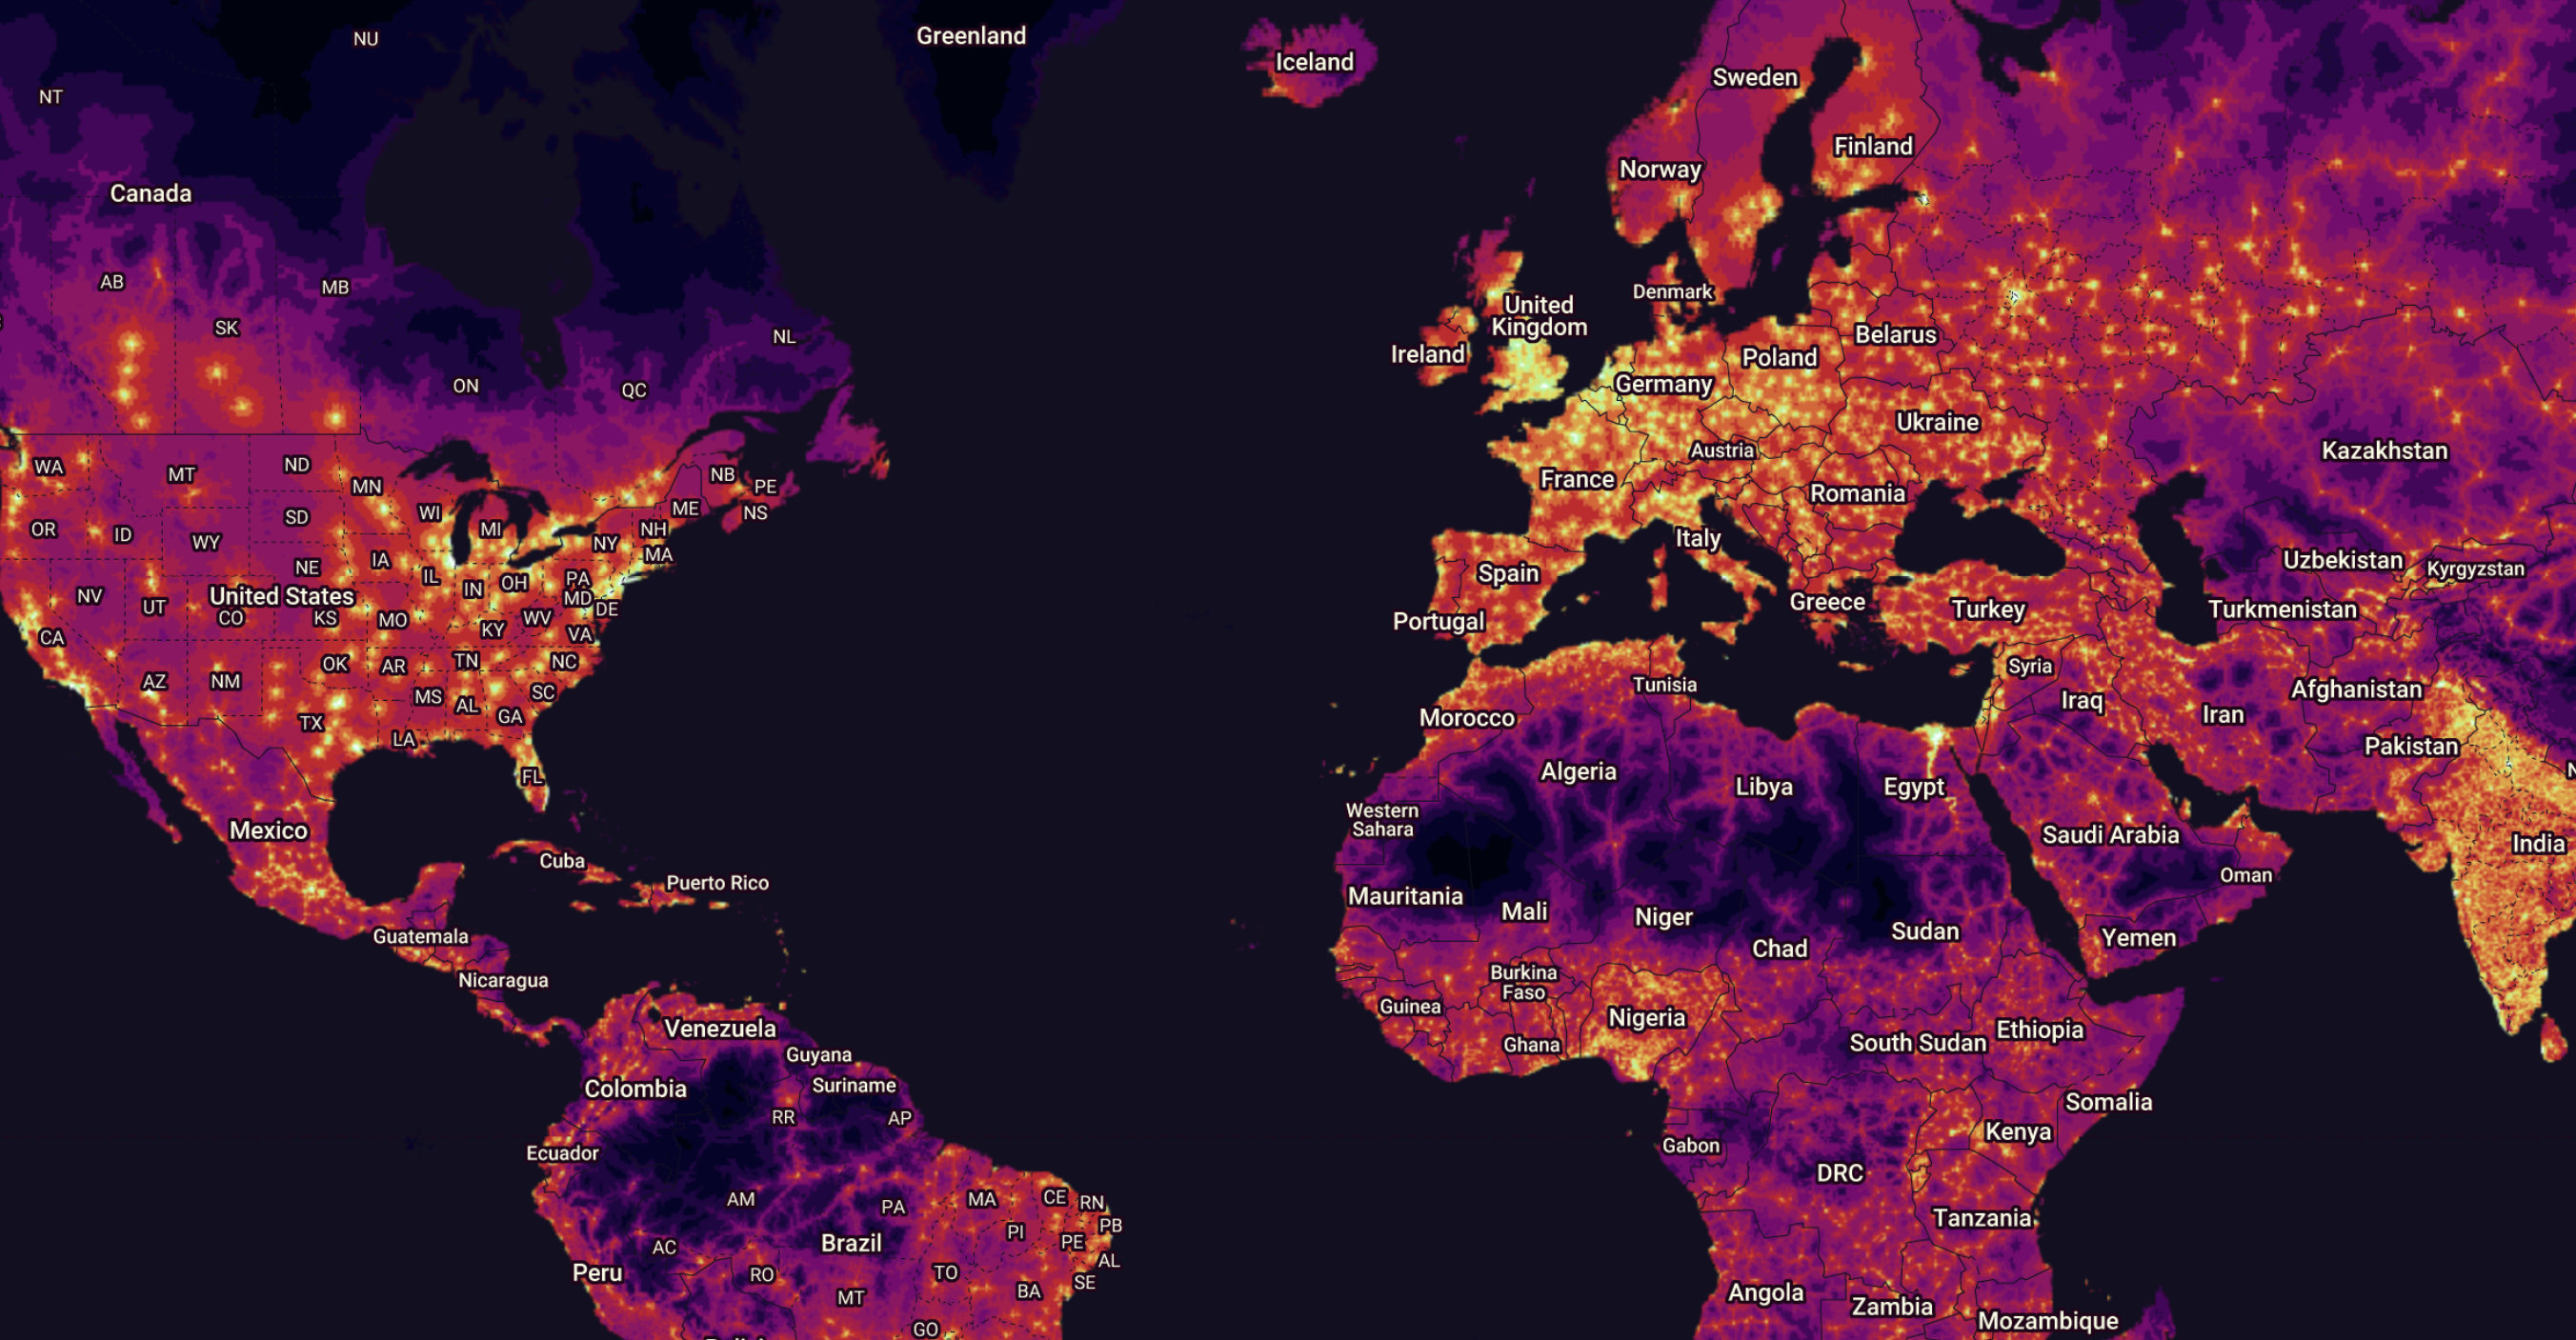 A map of accessibility showing the number of people within one hour of a city